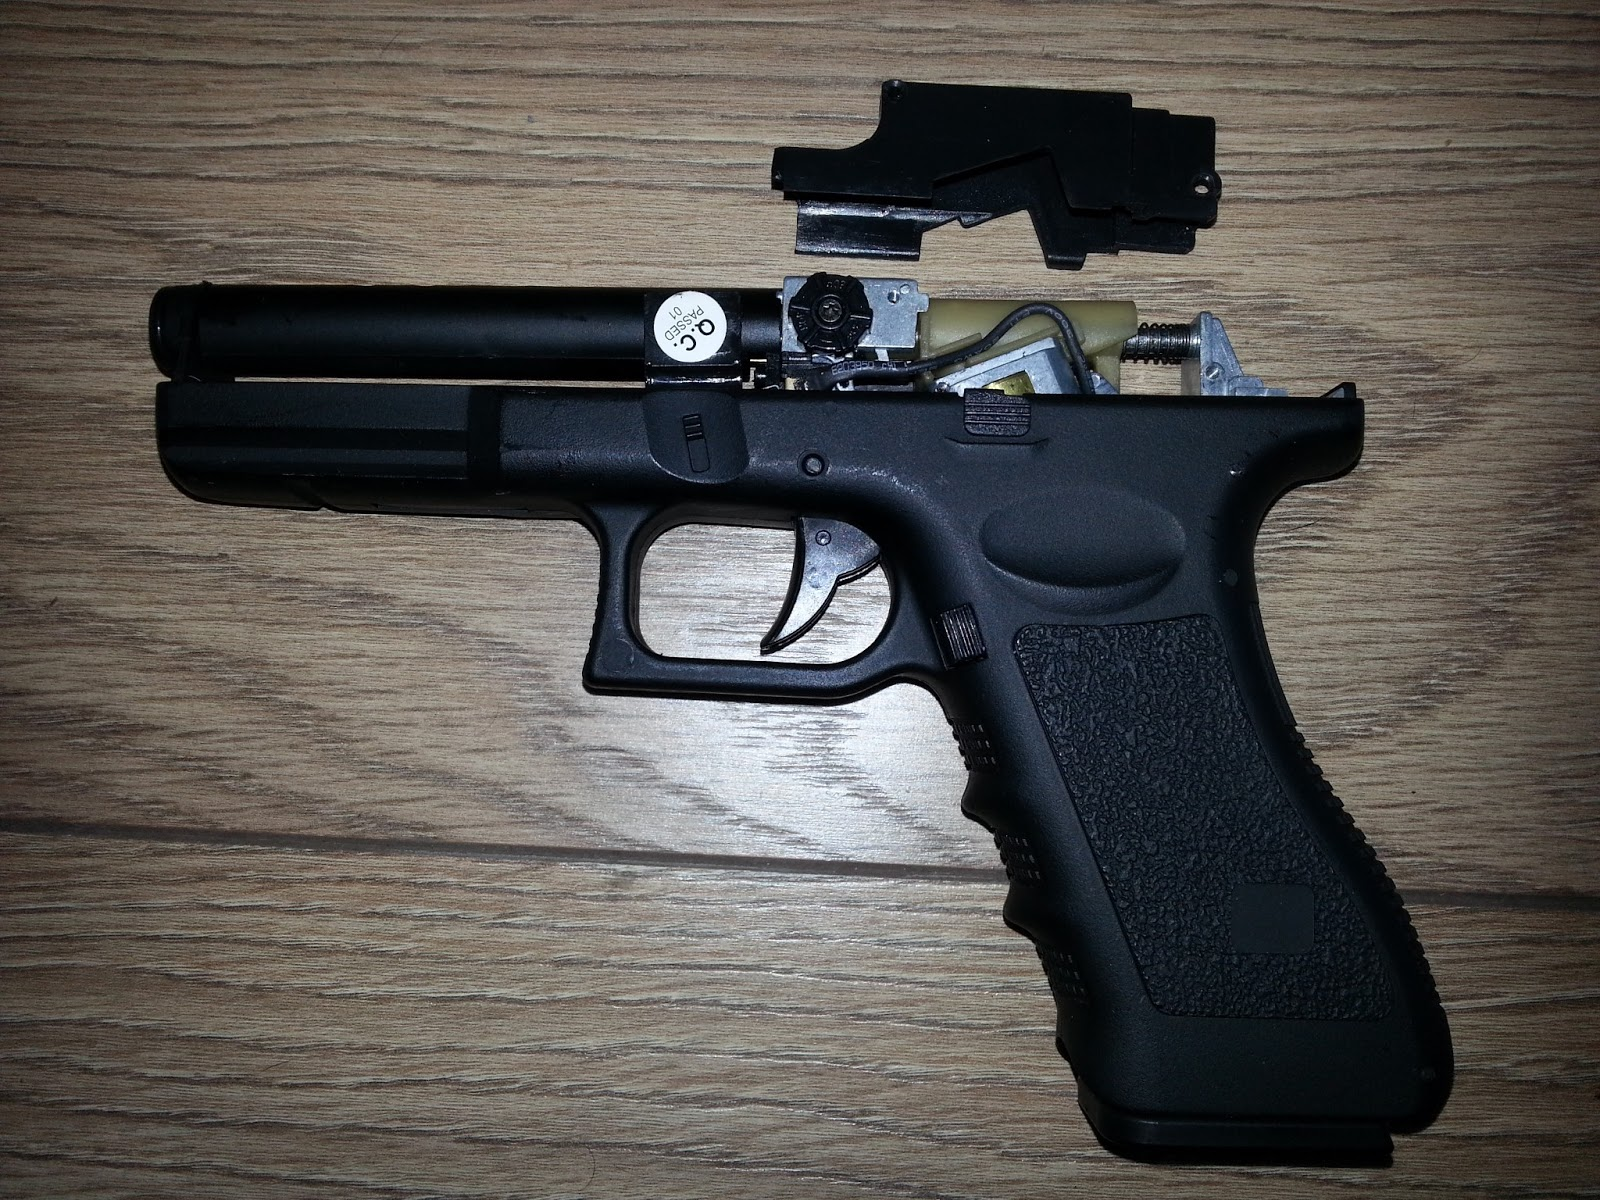 The Crapworks Airsoft Glock 18c Nimh To Lipo Permanent